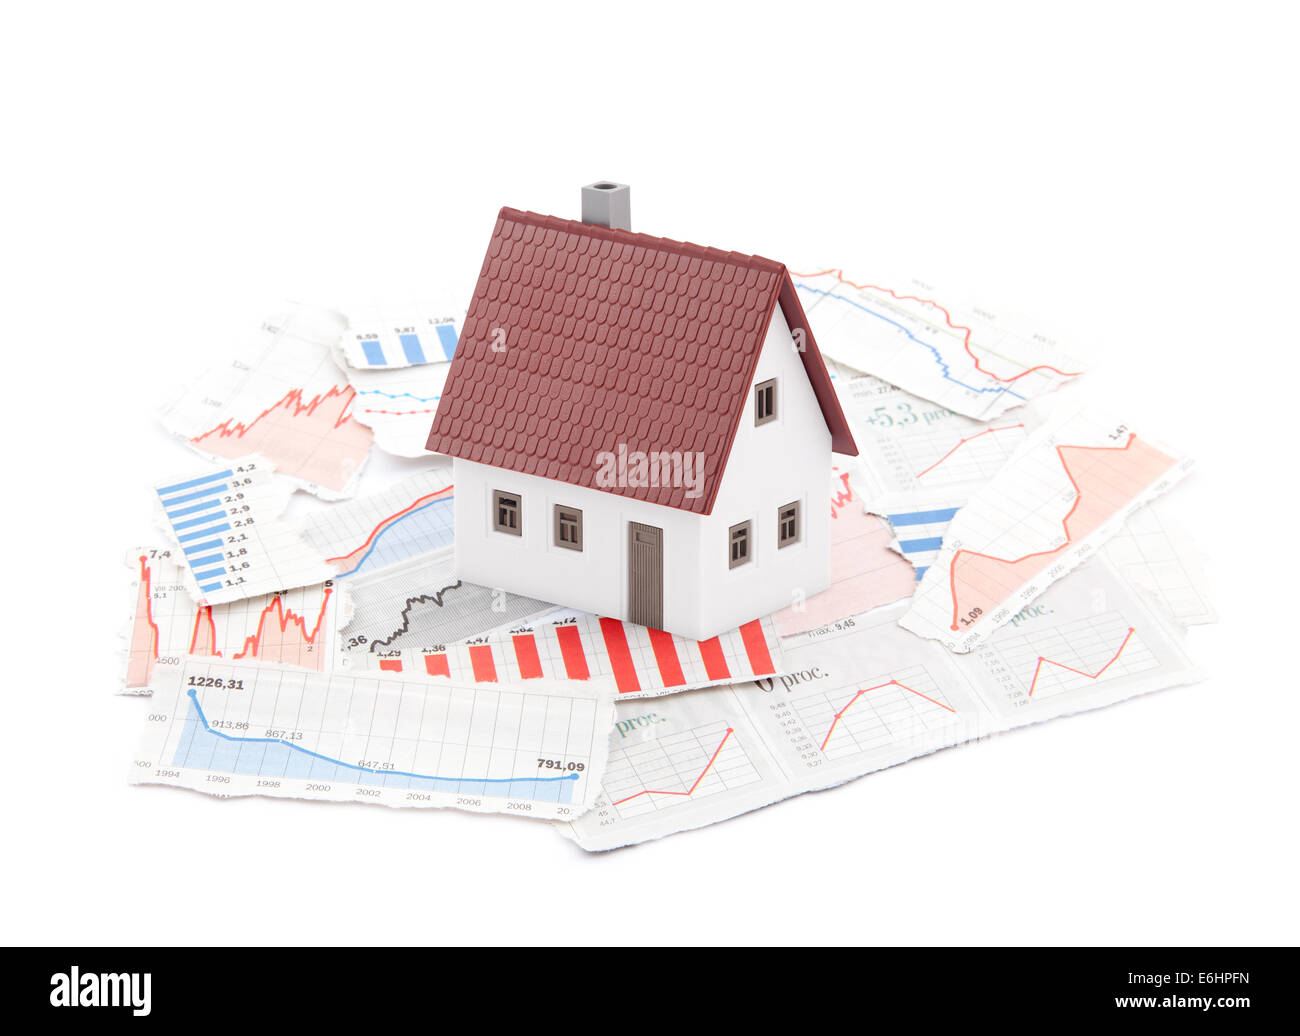 Small house on newspaper charts - Stock Image